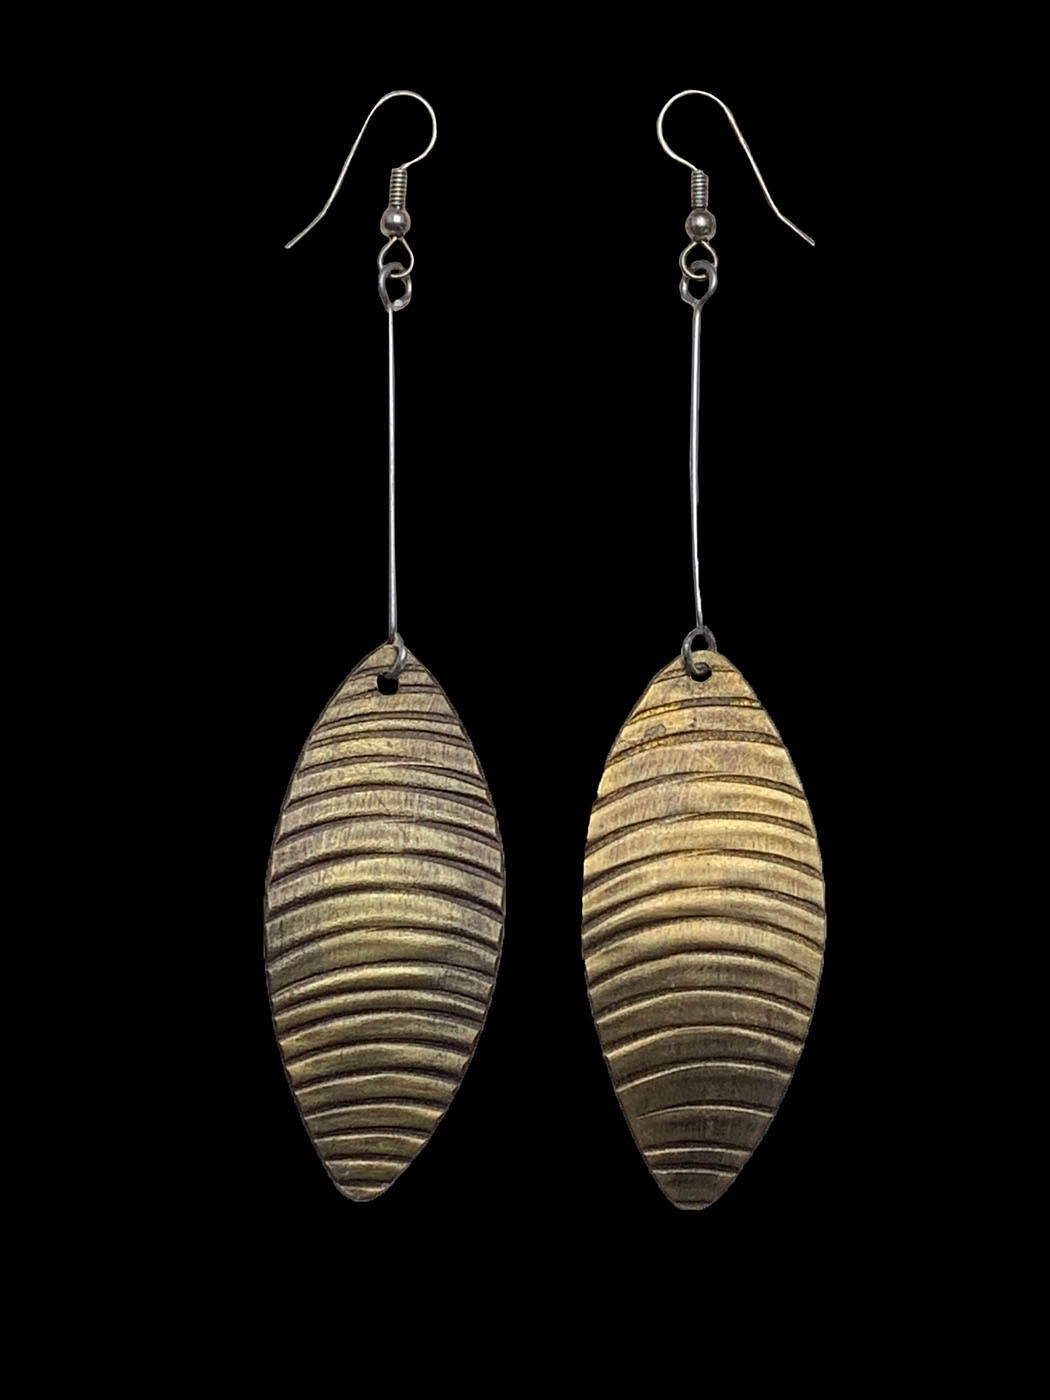 Leaf Shaped and Patterned Earrings - Kenya